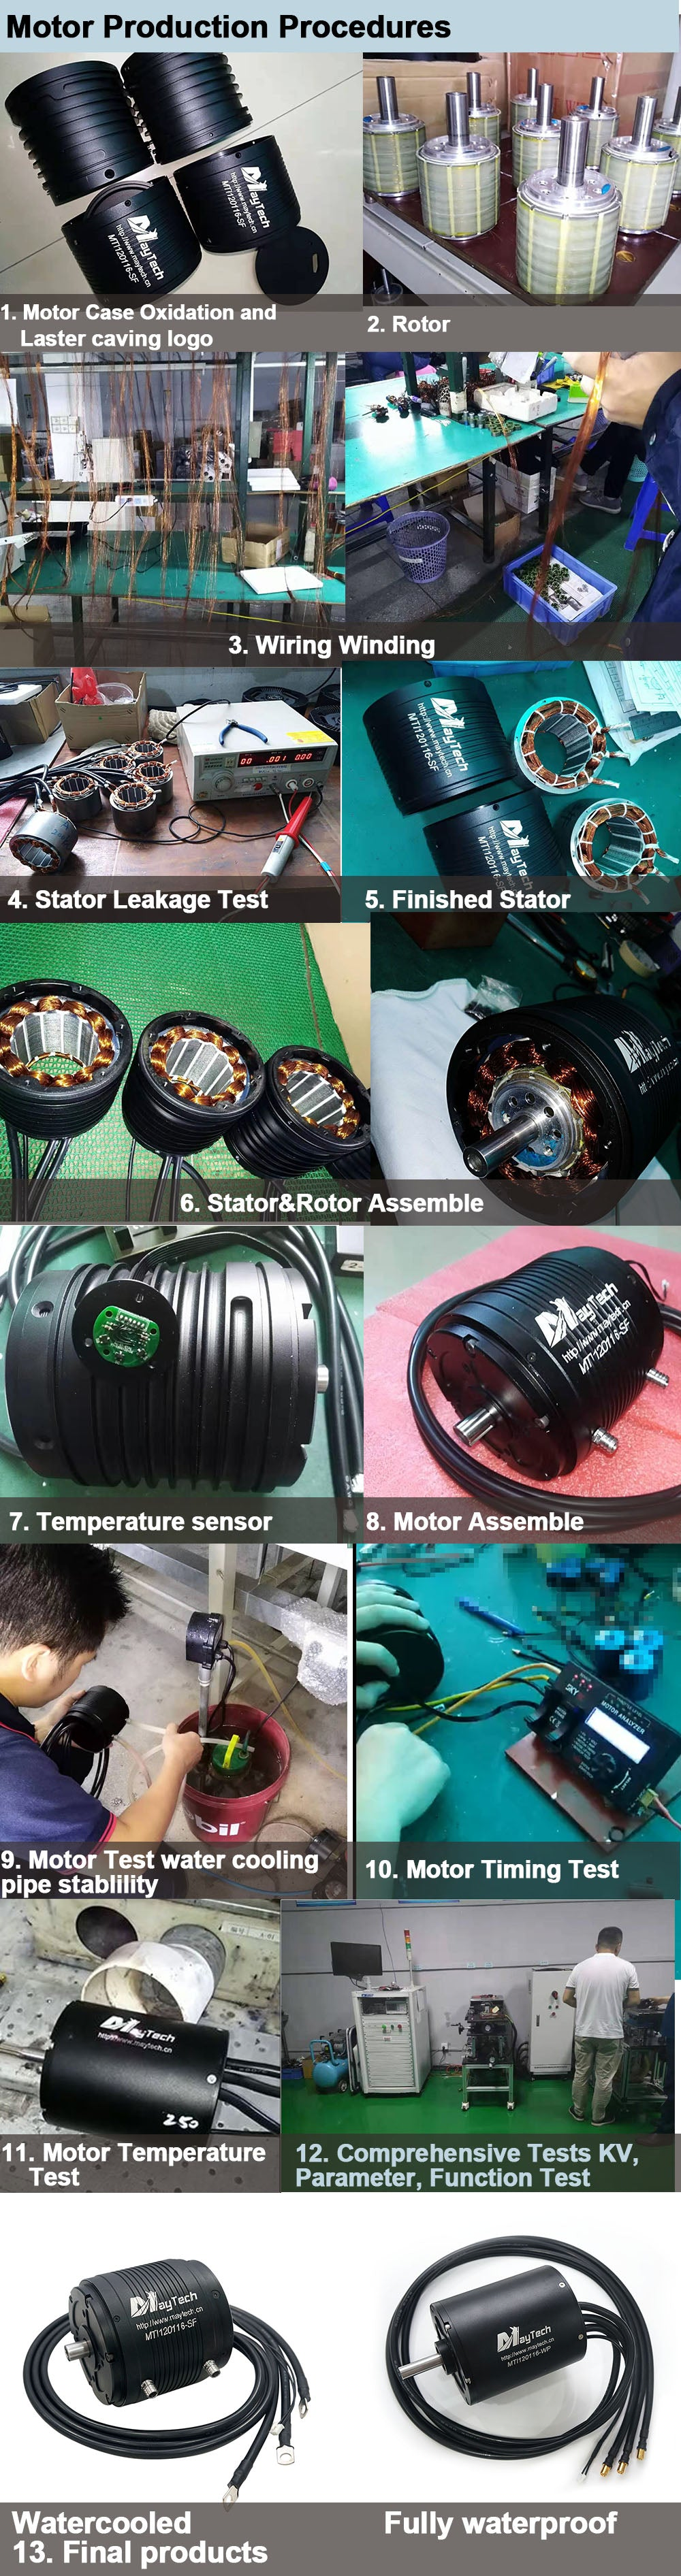 underwater thruster, Remote Operated Vehicle, ROV, ROV´s, ROV, Marine Outboard Engines, Underwater vehicle systems, Underwater vehicle components, underwater remotely operated vehicles, marine ROV, Submarine Propulsion Systems, Underwater Propulsion Device, Personal Propulsion System, Underwater Scooter, ROV thruster, Underwater Diving Scooter, rescue boat, motorized surfboard, powered surfboard, E-sup, E-fin, Electric sup, Stand paddle, paddle board, Surfboarding, foiling, yachat, racing boat, waterproof underwater propulsion, jet propusion unit, Remote Operated Vehicle, ROV, motorcross bike